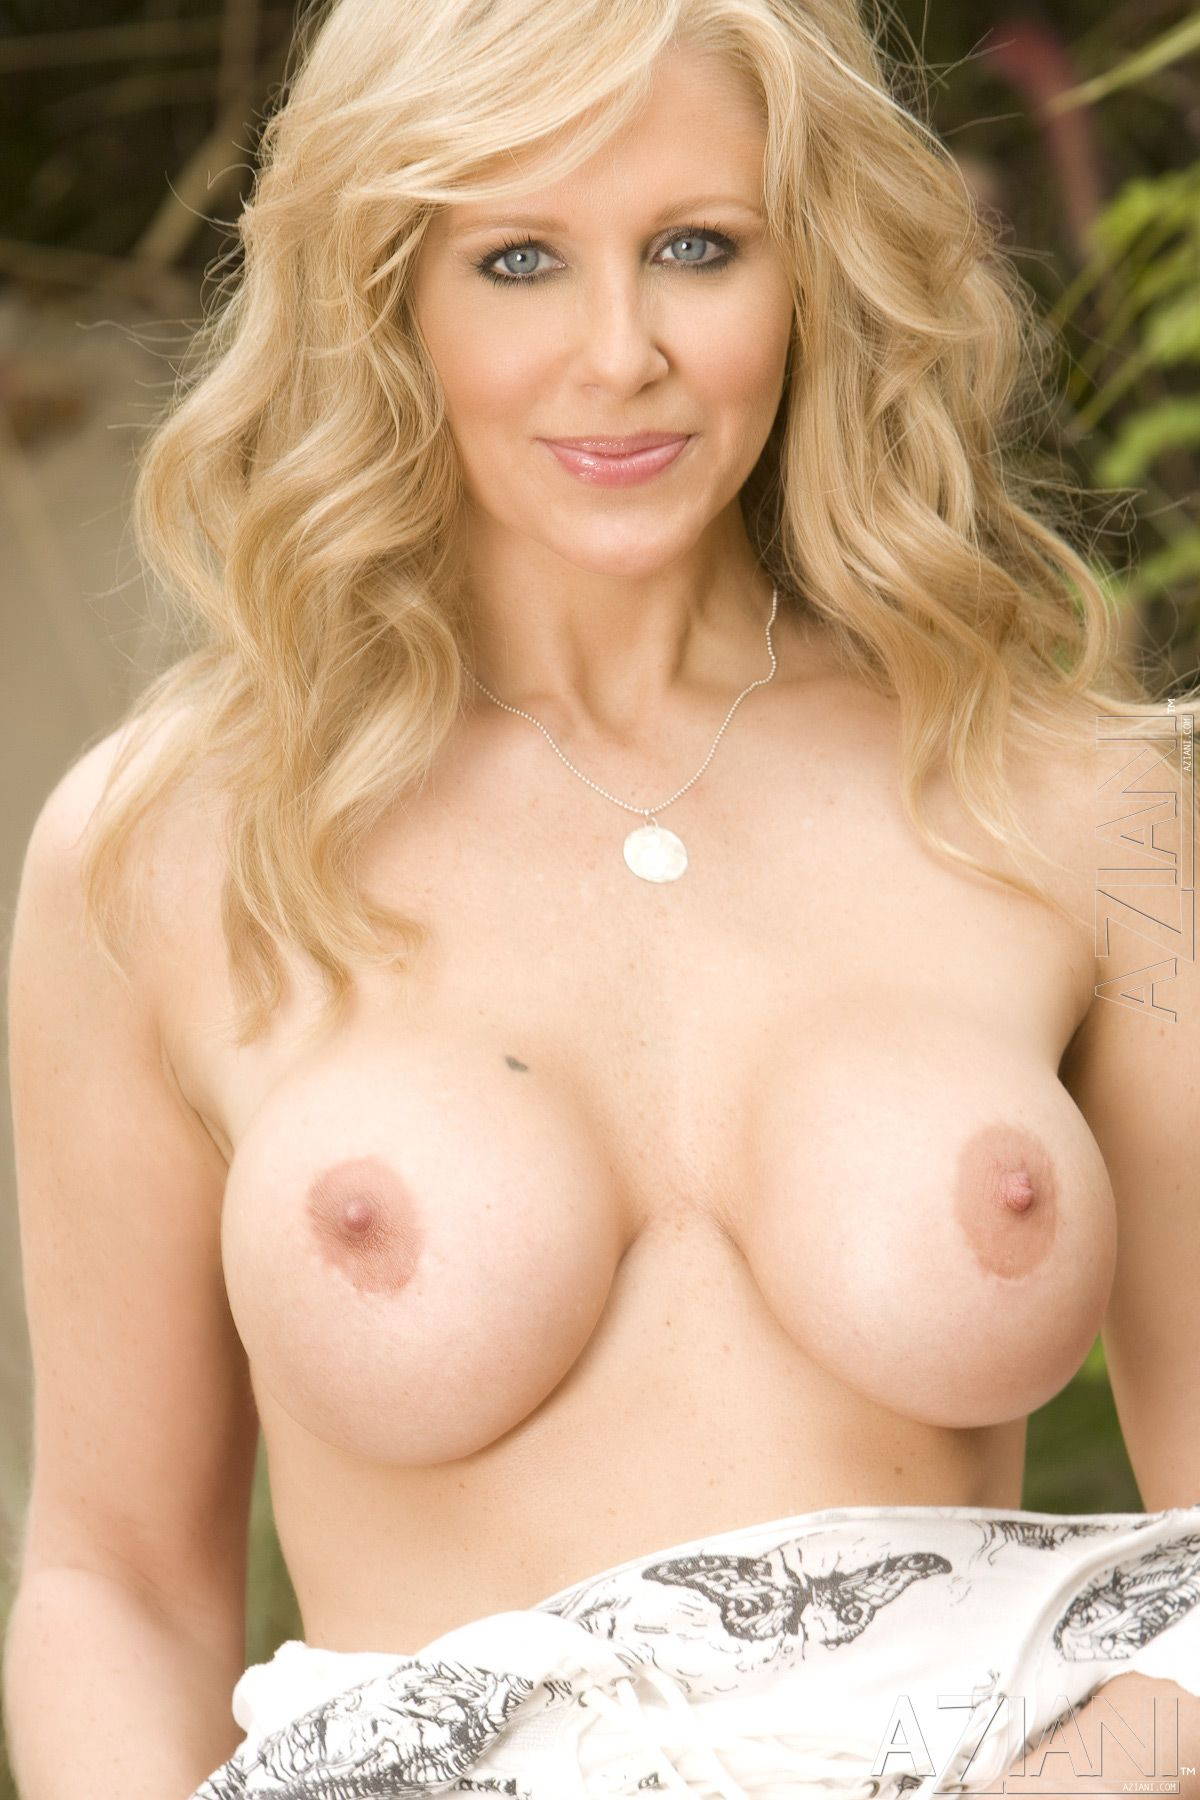 from Kaiden sexy pix of julia ann nude